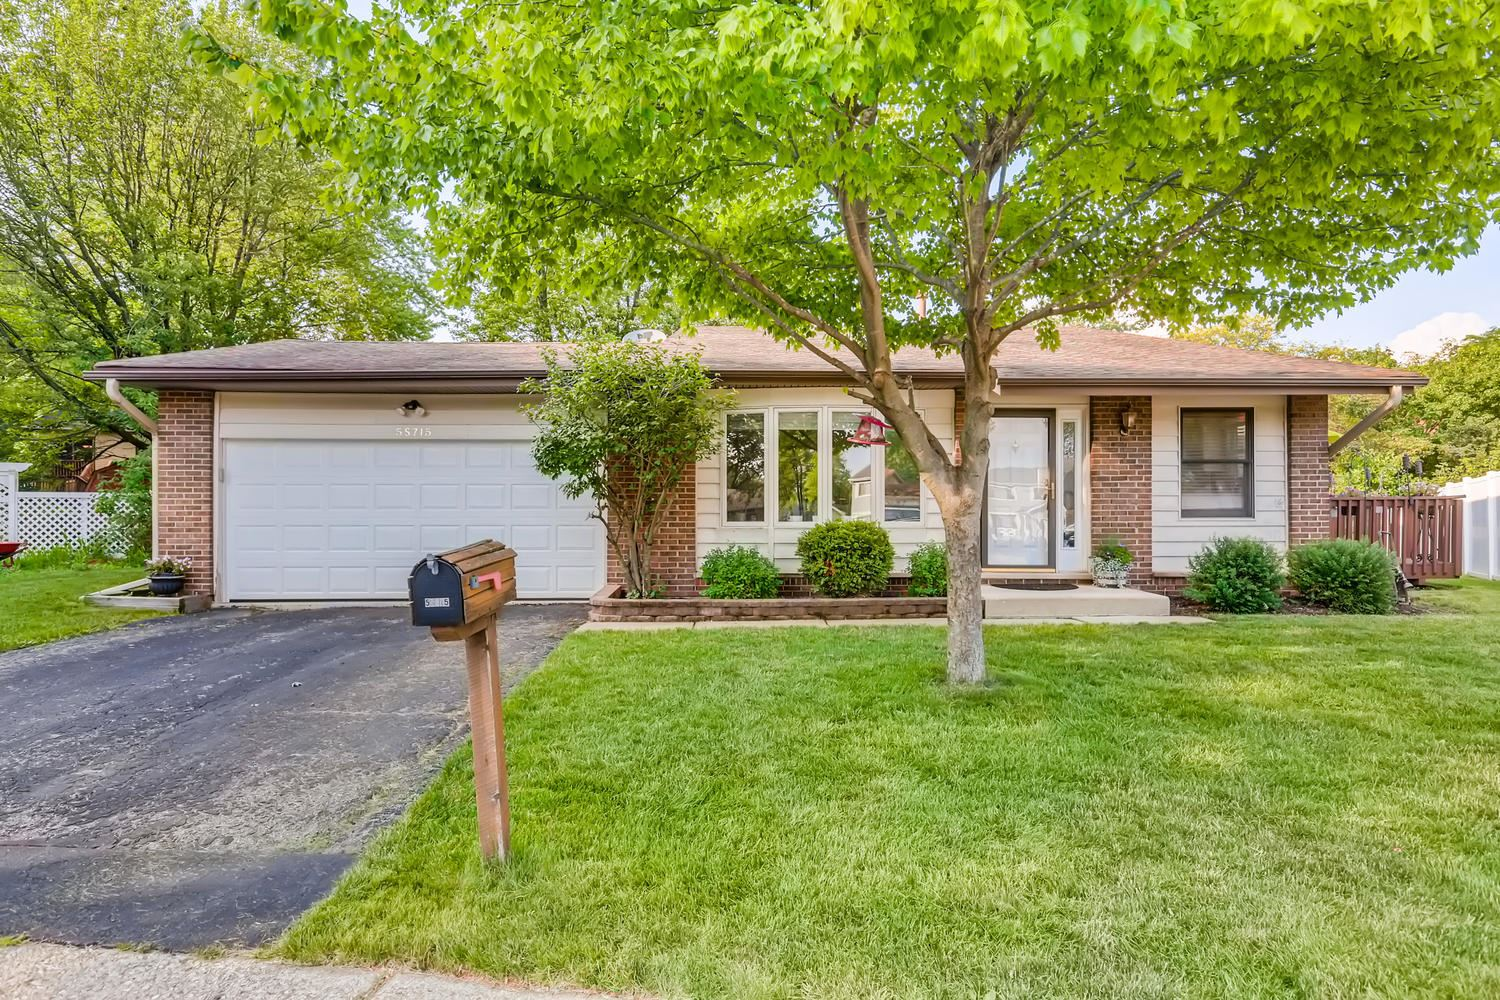 5S715 Starling Court, Naperville, IL 60540 - #: 10777535